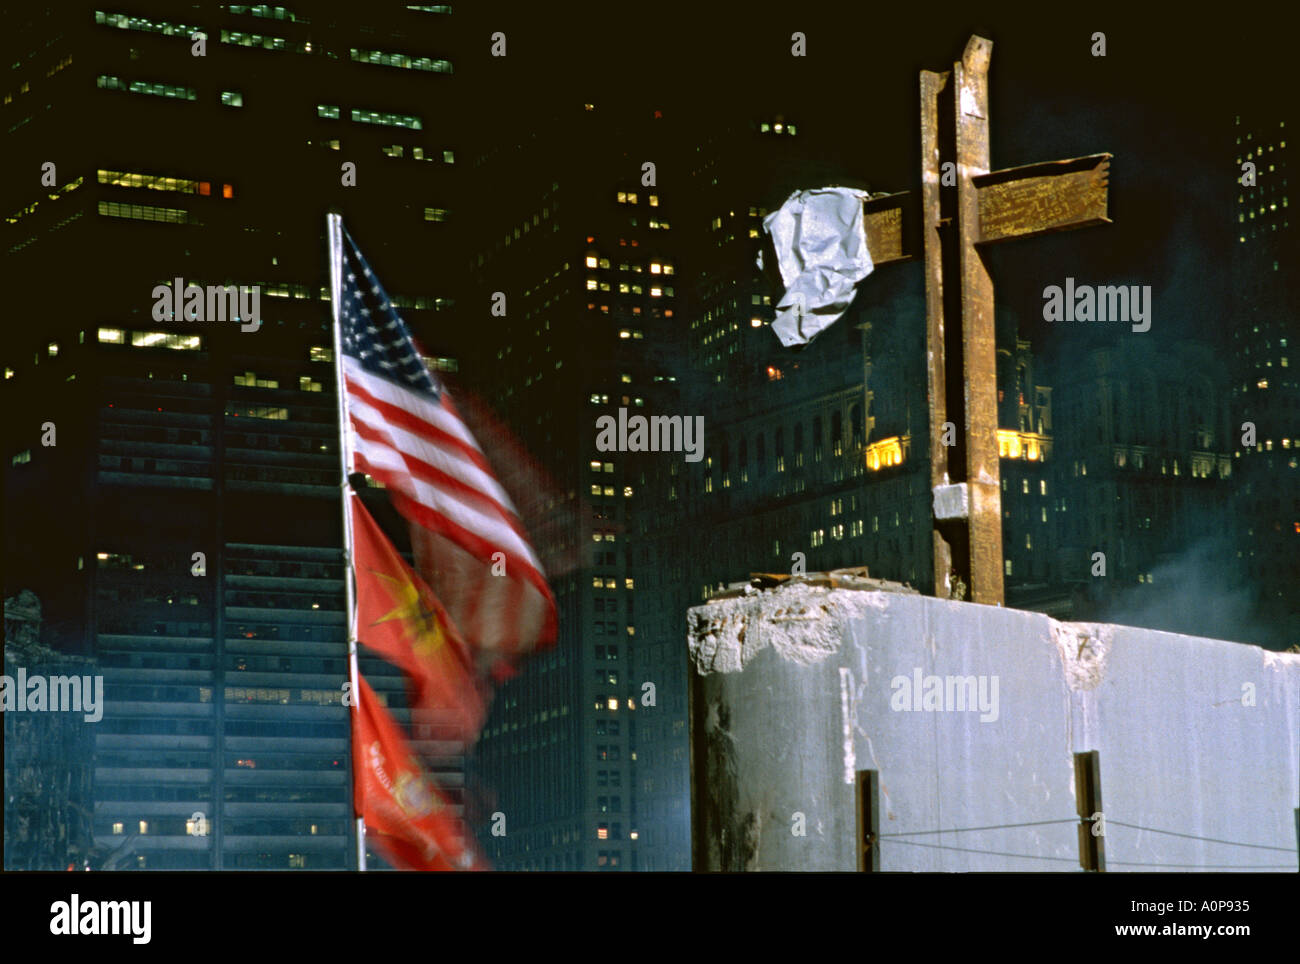 Among the debris of the World Trade Center attack in New York City after the September 11, 2001 terrorist attack a cross was raised by ironworkers. - Stock Image